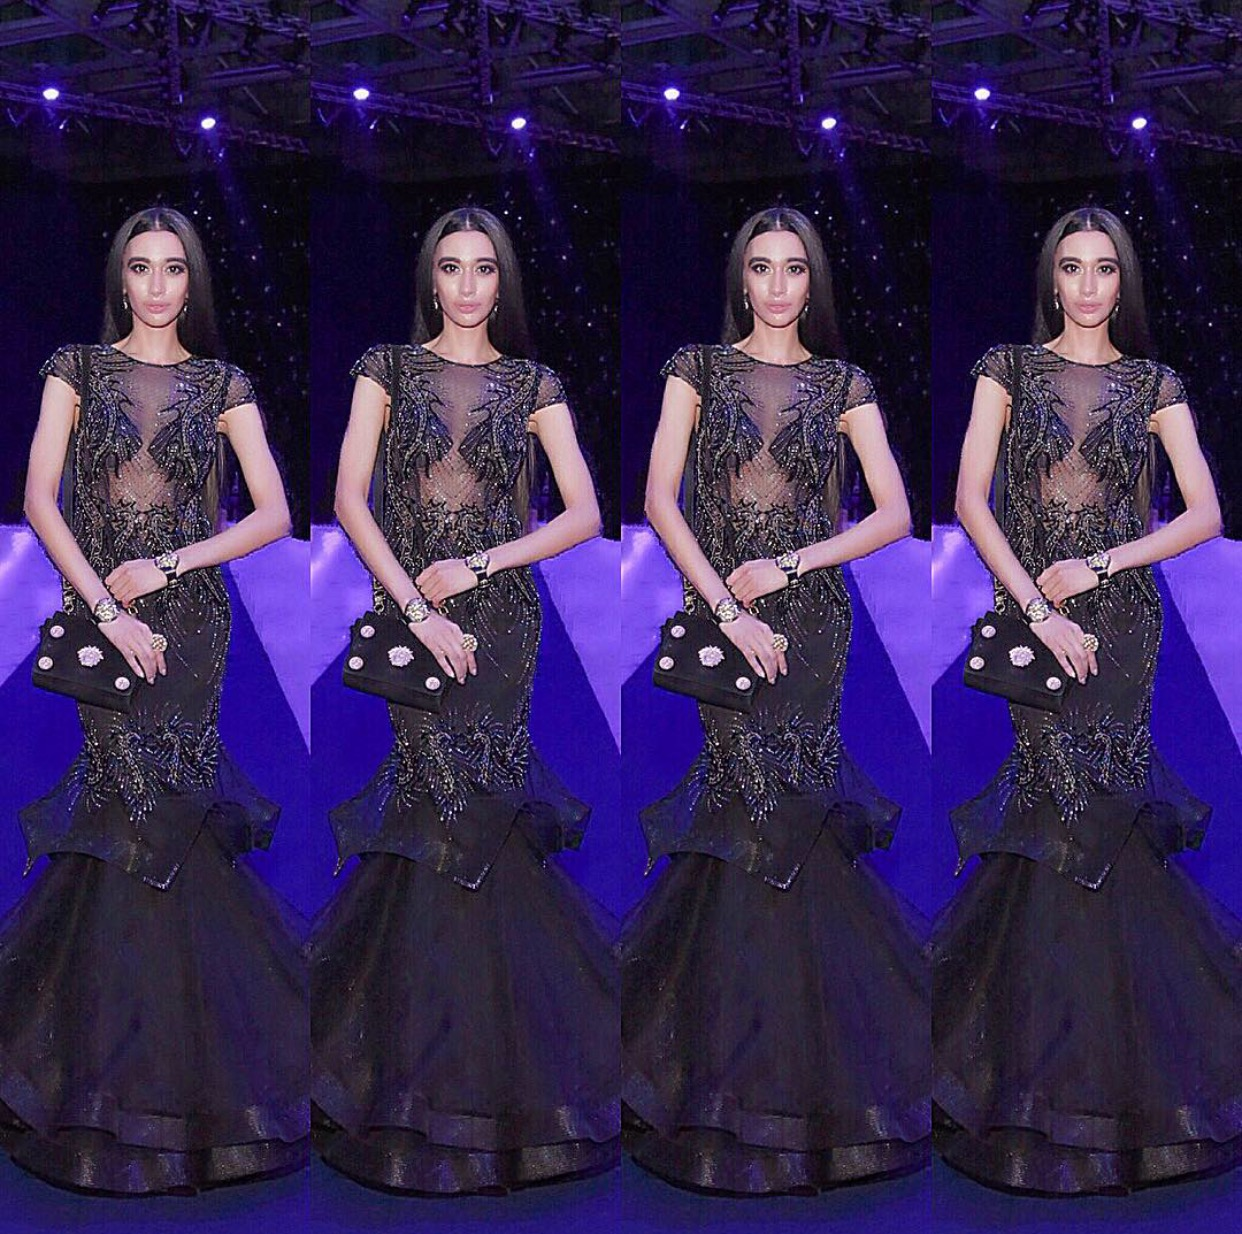 #VersaceDoll 👸🏻 Because four FARAHS are better than one. 😎 On the purple #Versace S/S 2017 runway, & I shine bright like a diamond! 💎✨🙏🏼 THANK YOU TO EVERYONE for making this possible in beautiful Milan! (Photo credit: Gabriela Di Muro) 👯